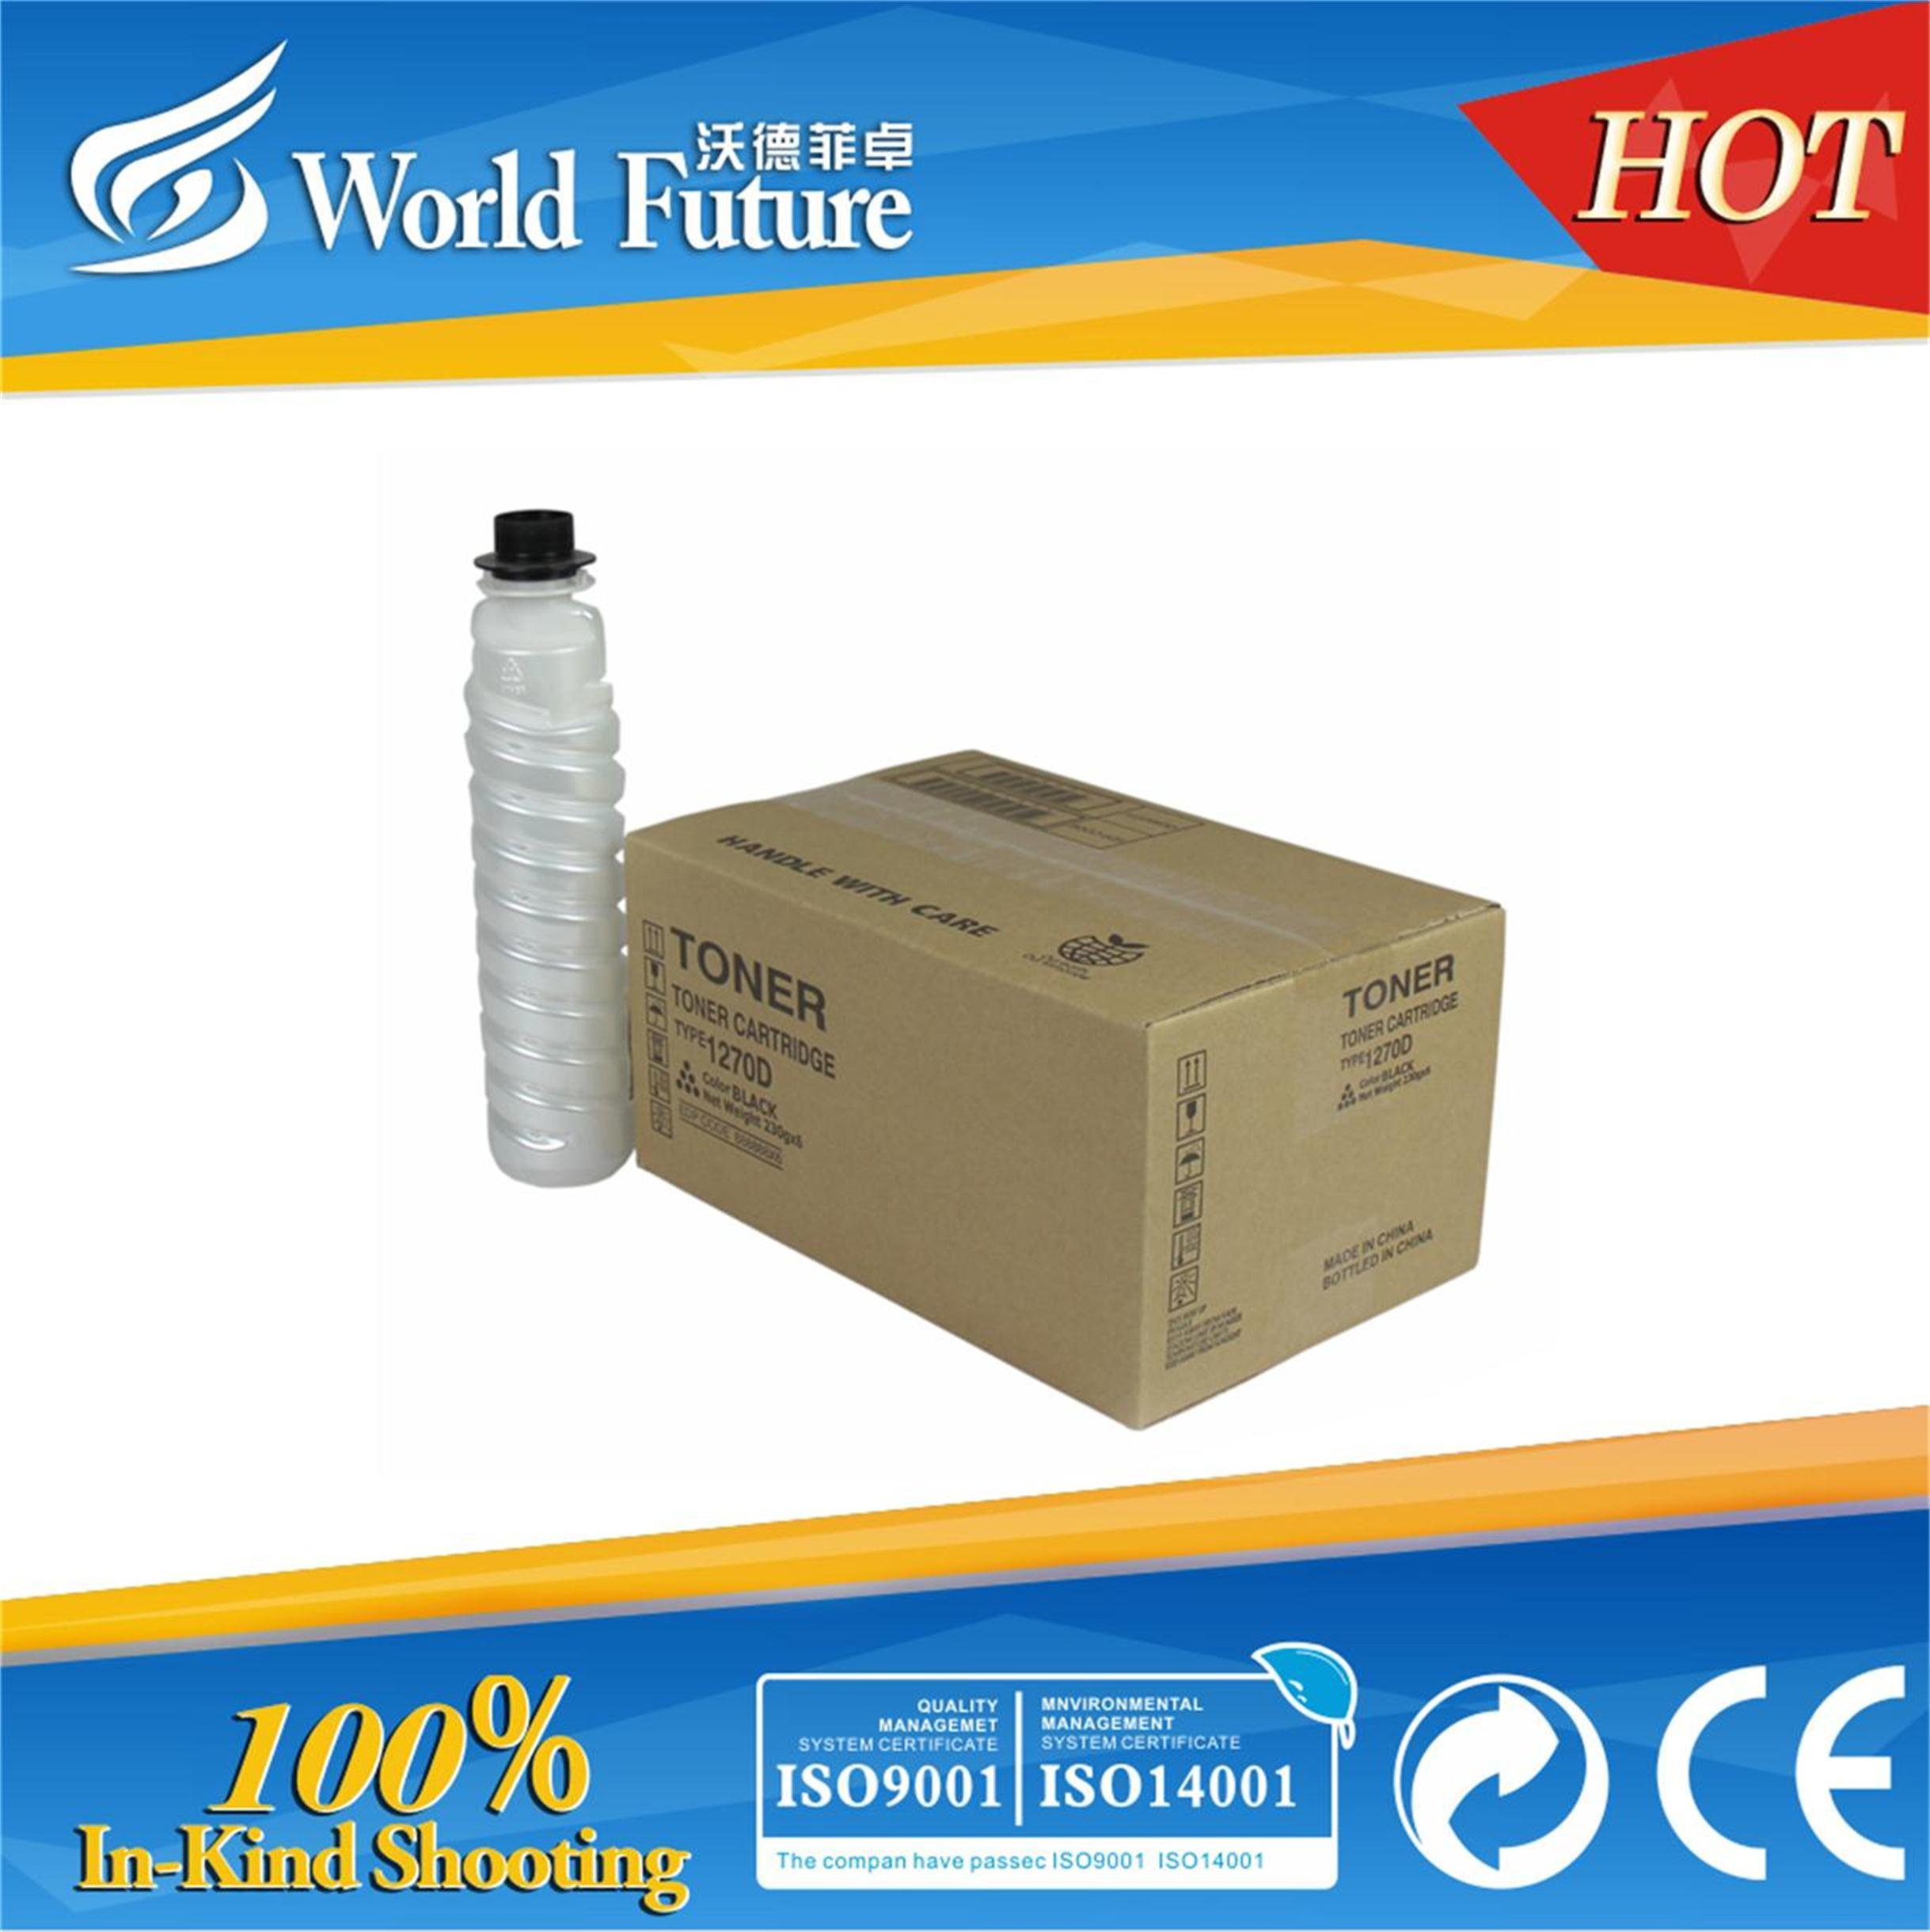 New Compatible Laser Copier Toner Cartridge for Ricoh 1170d/1270d